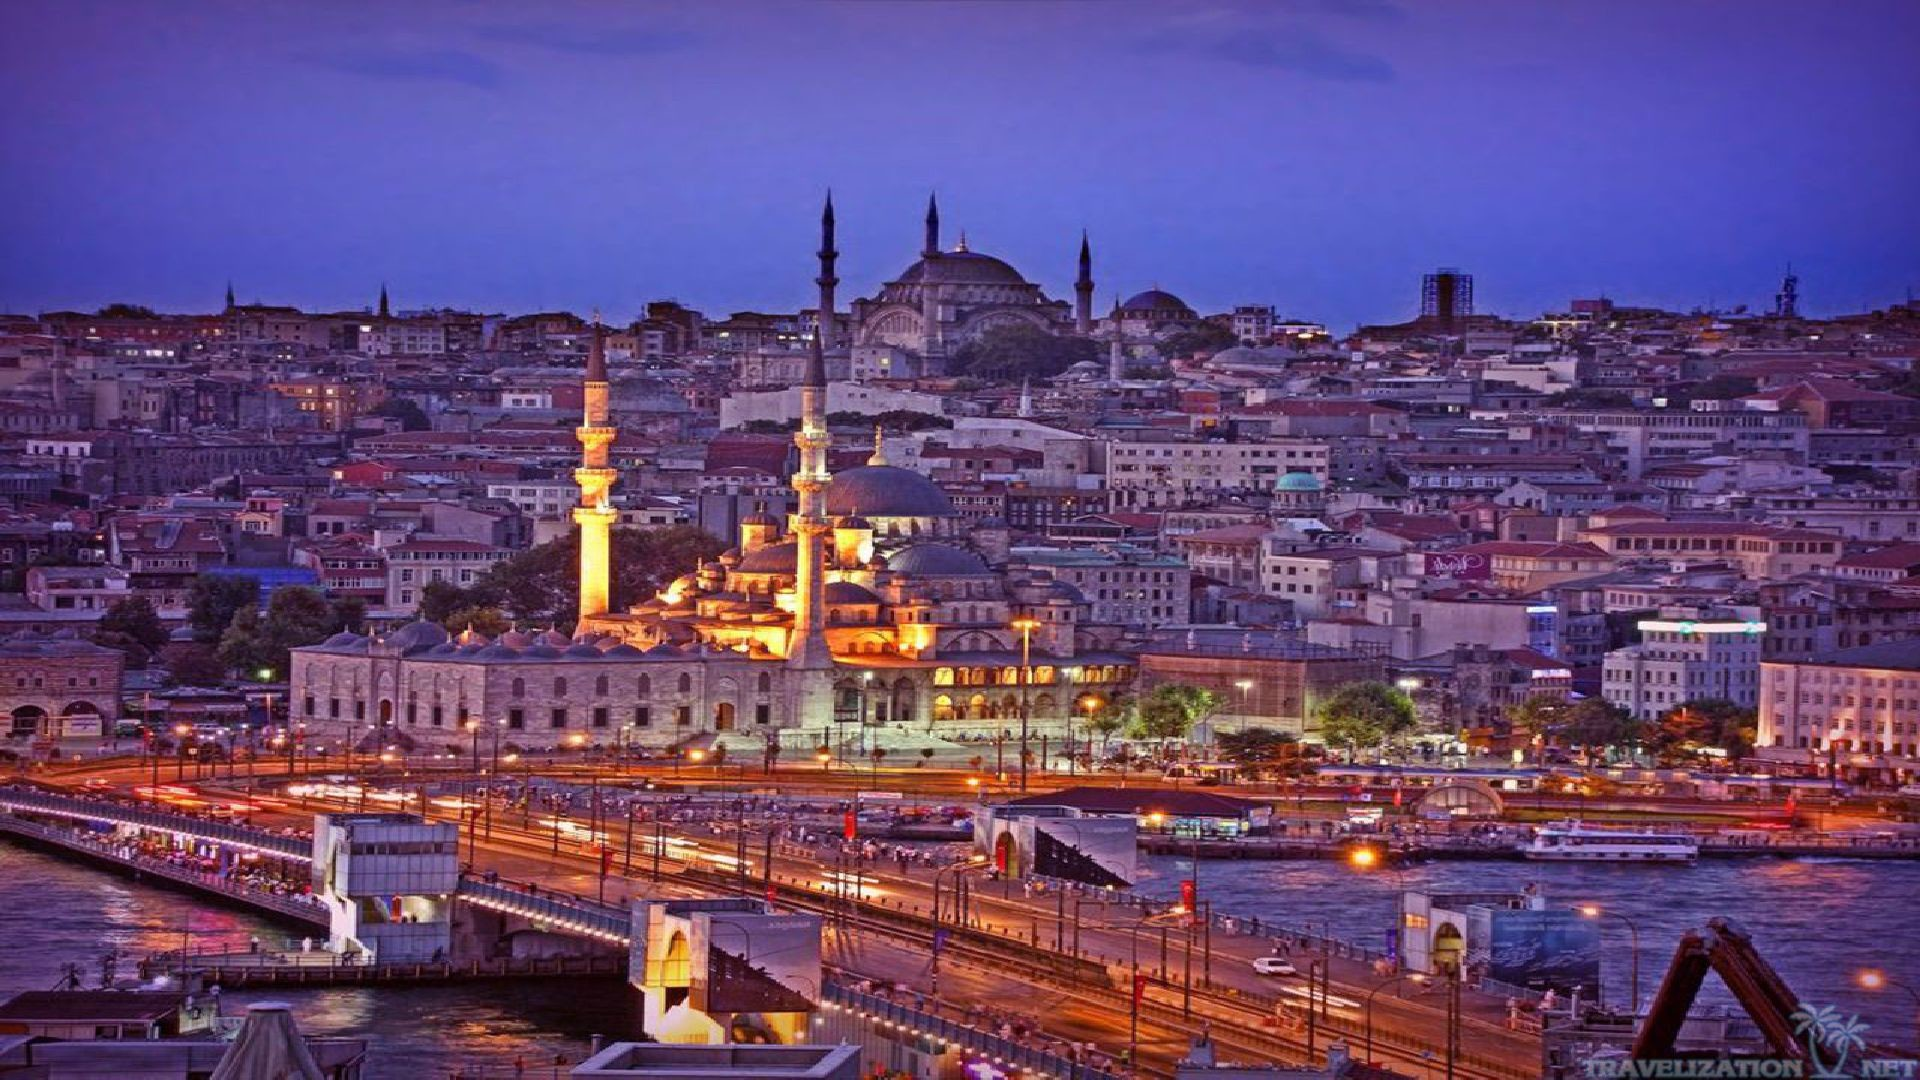 1920x1080 Full HD 1080p Istanbul Wallpapers HD, Desktop Backgrounds